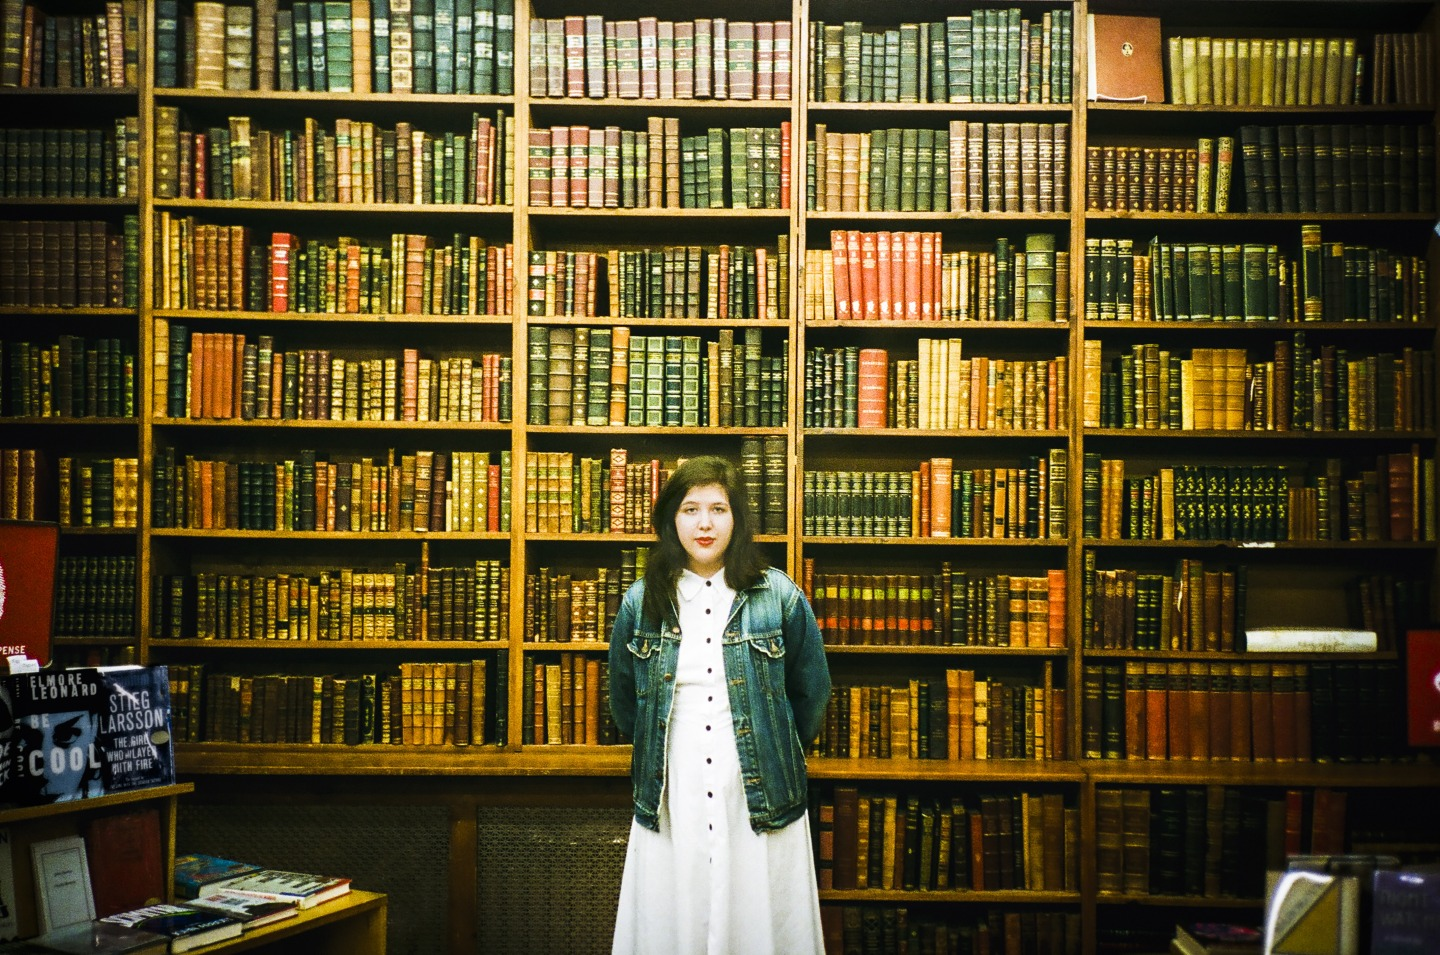 Lucy Dacus made a how-to guide for surviving loss and it sounds really beautiful